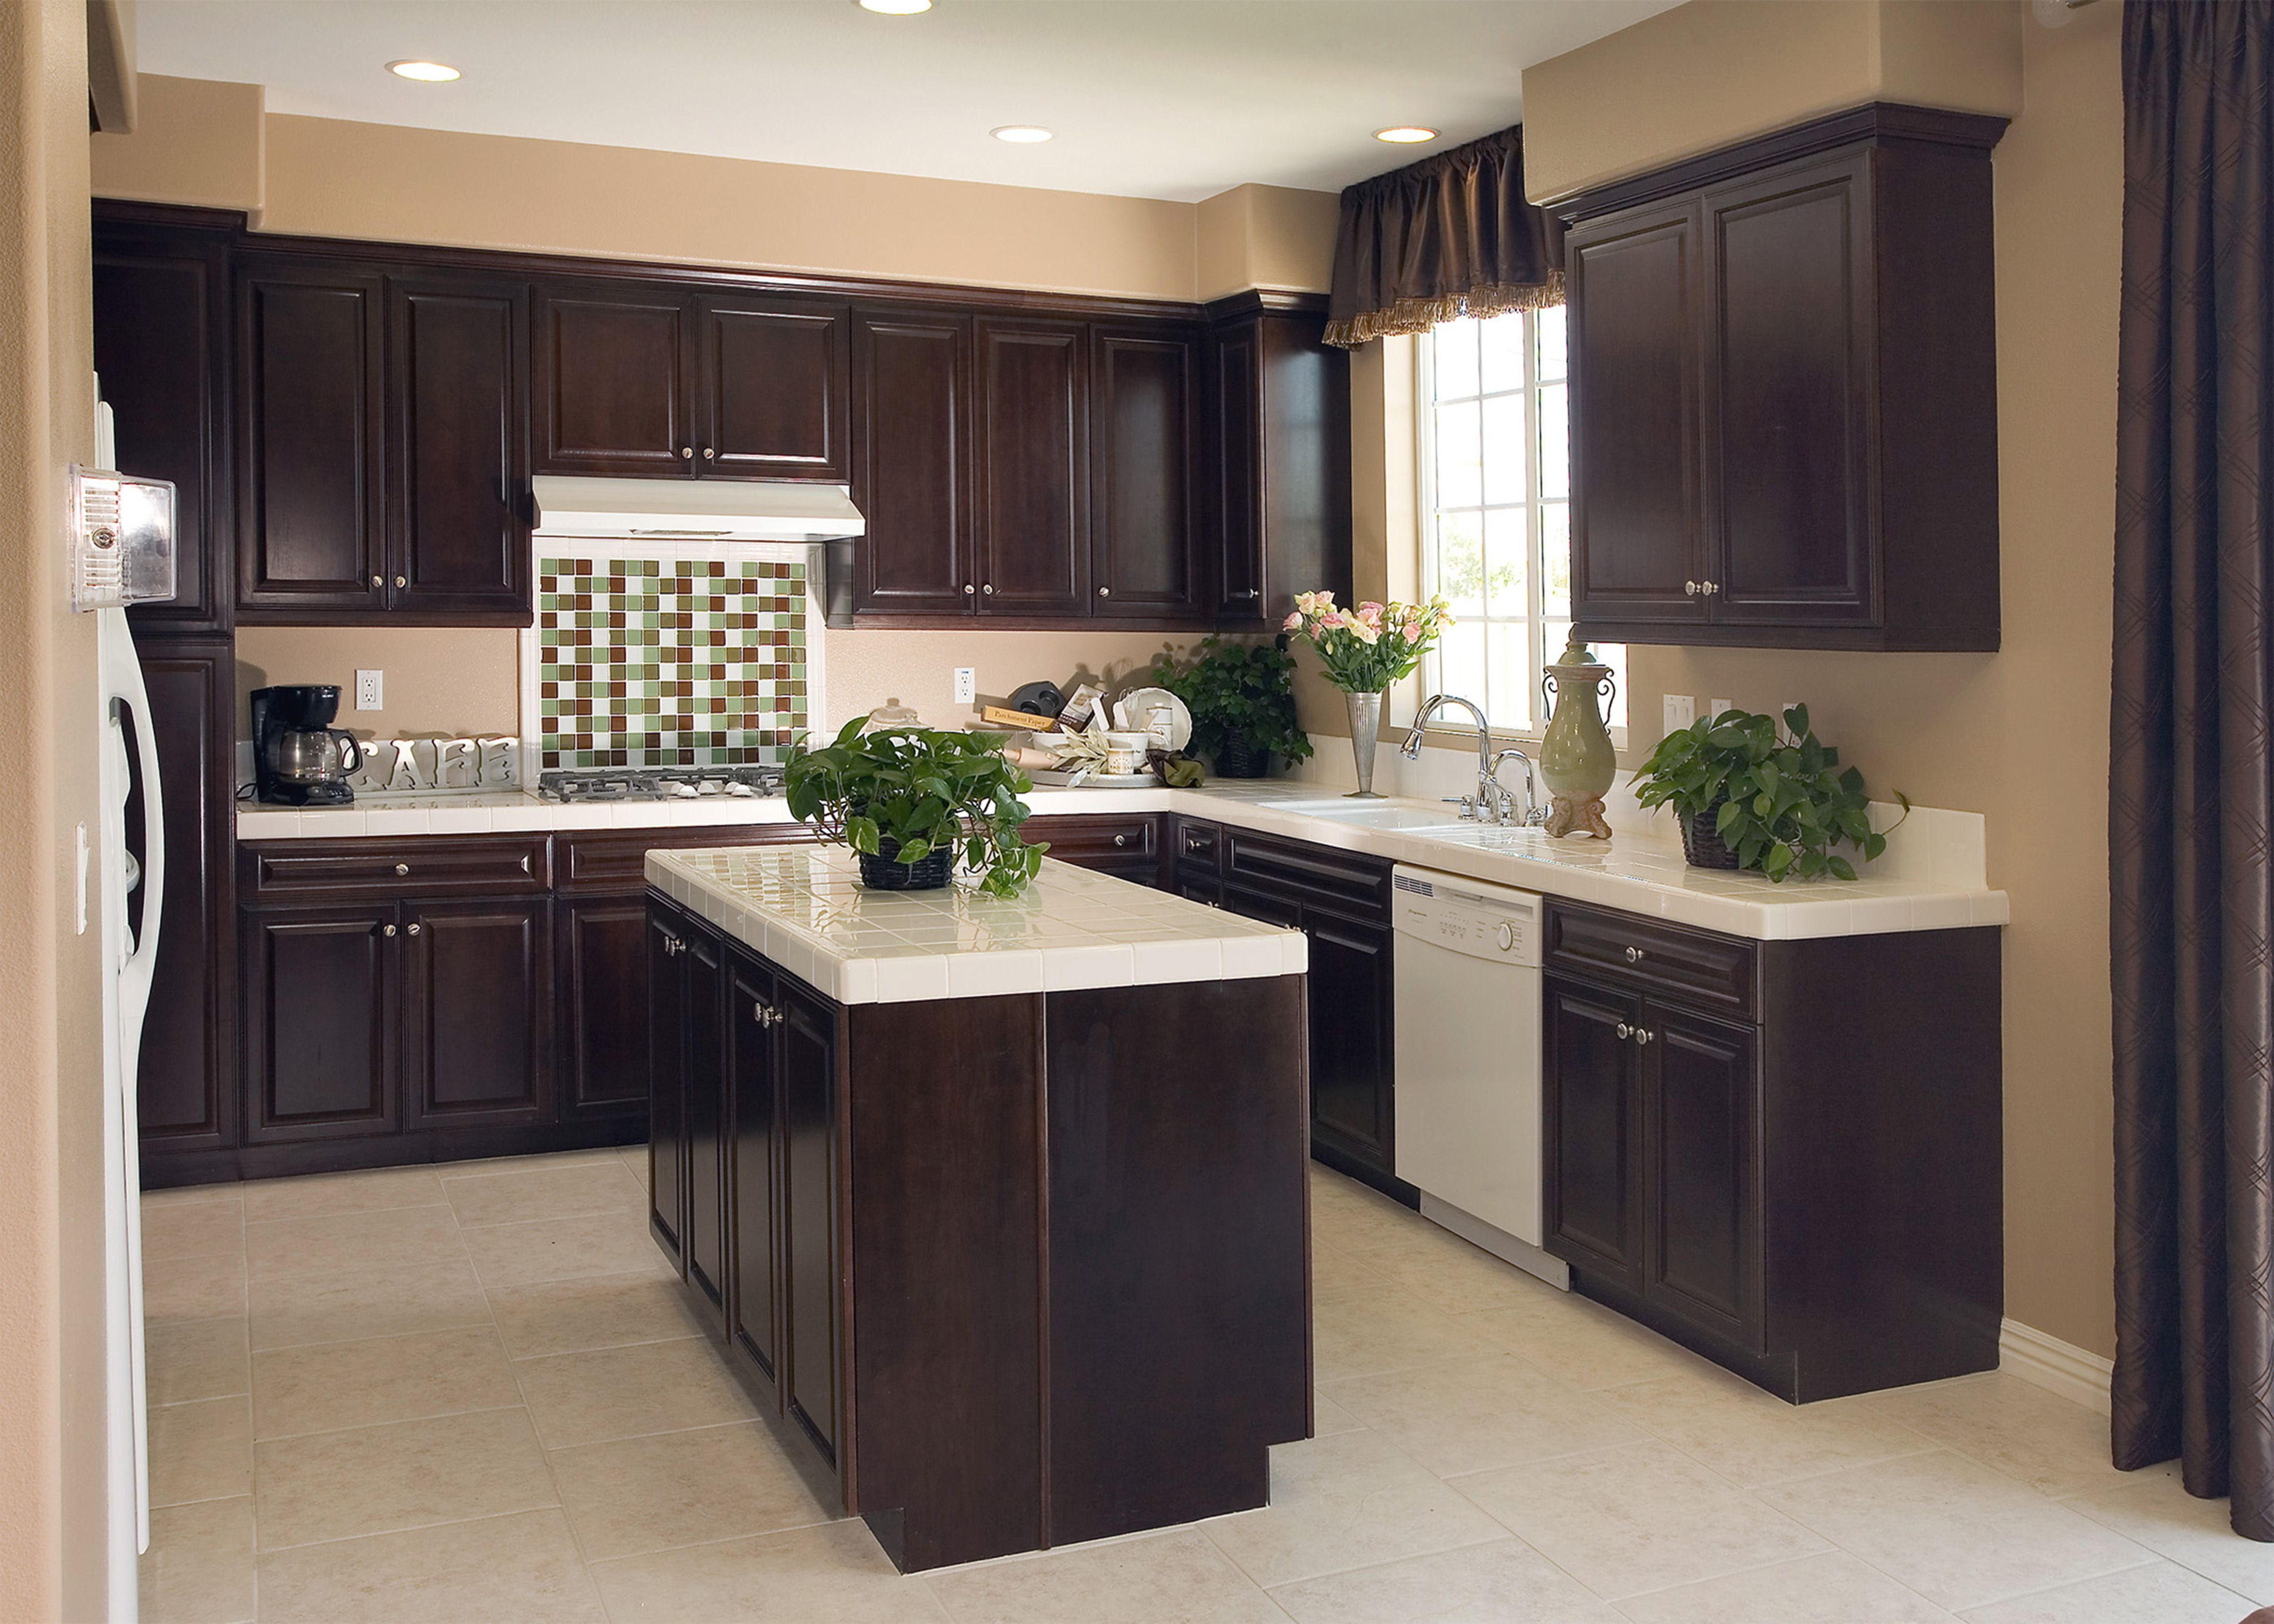 Picture Of U Shaped Apartment Kitchen With Dark Brown